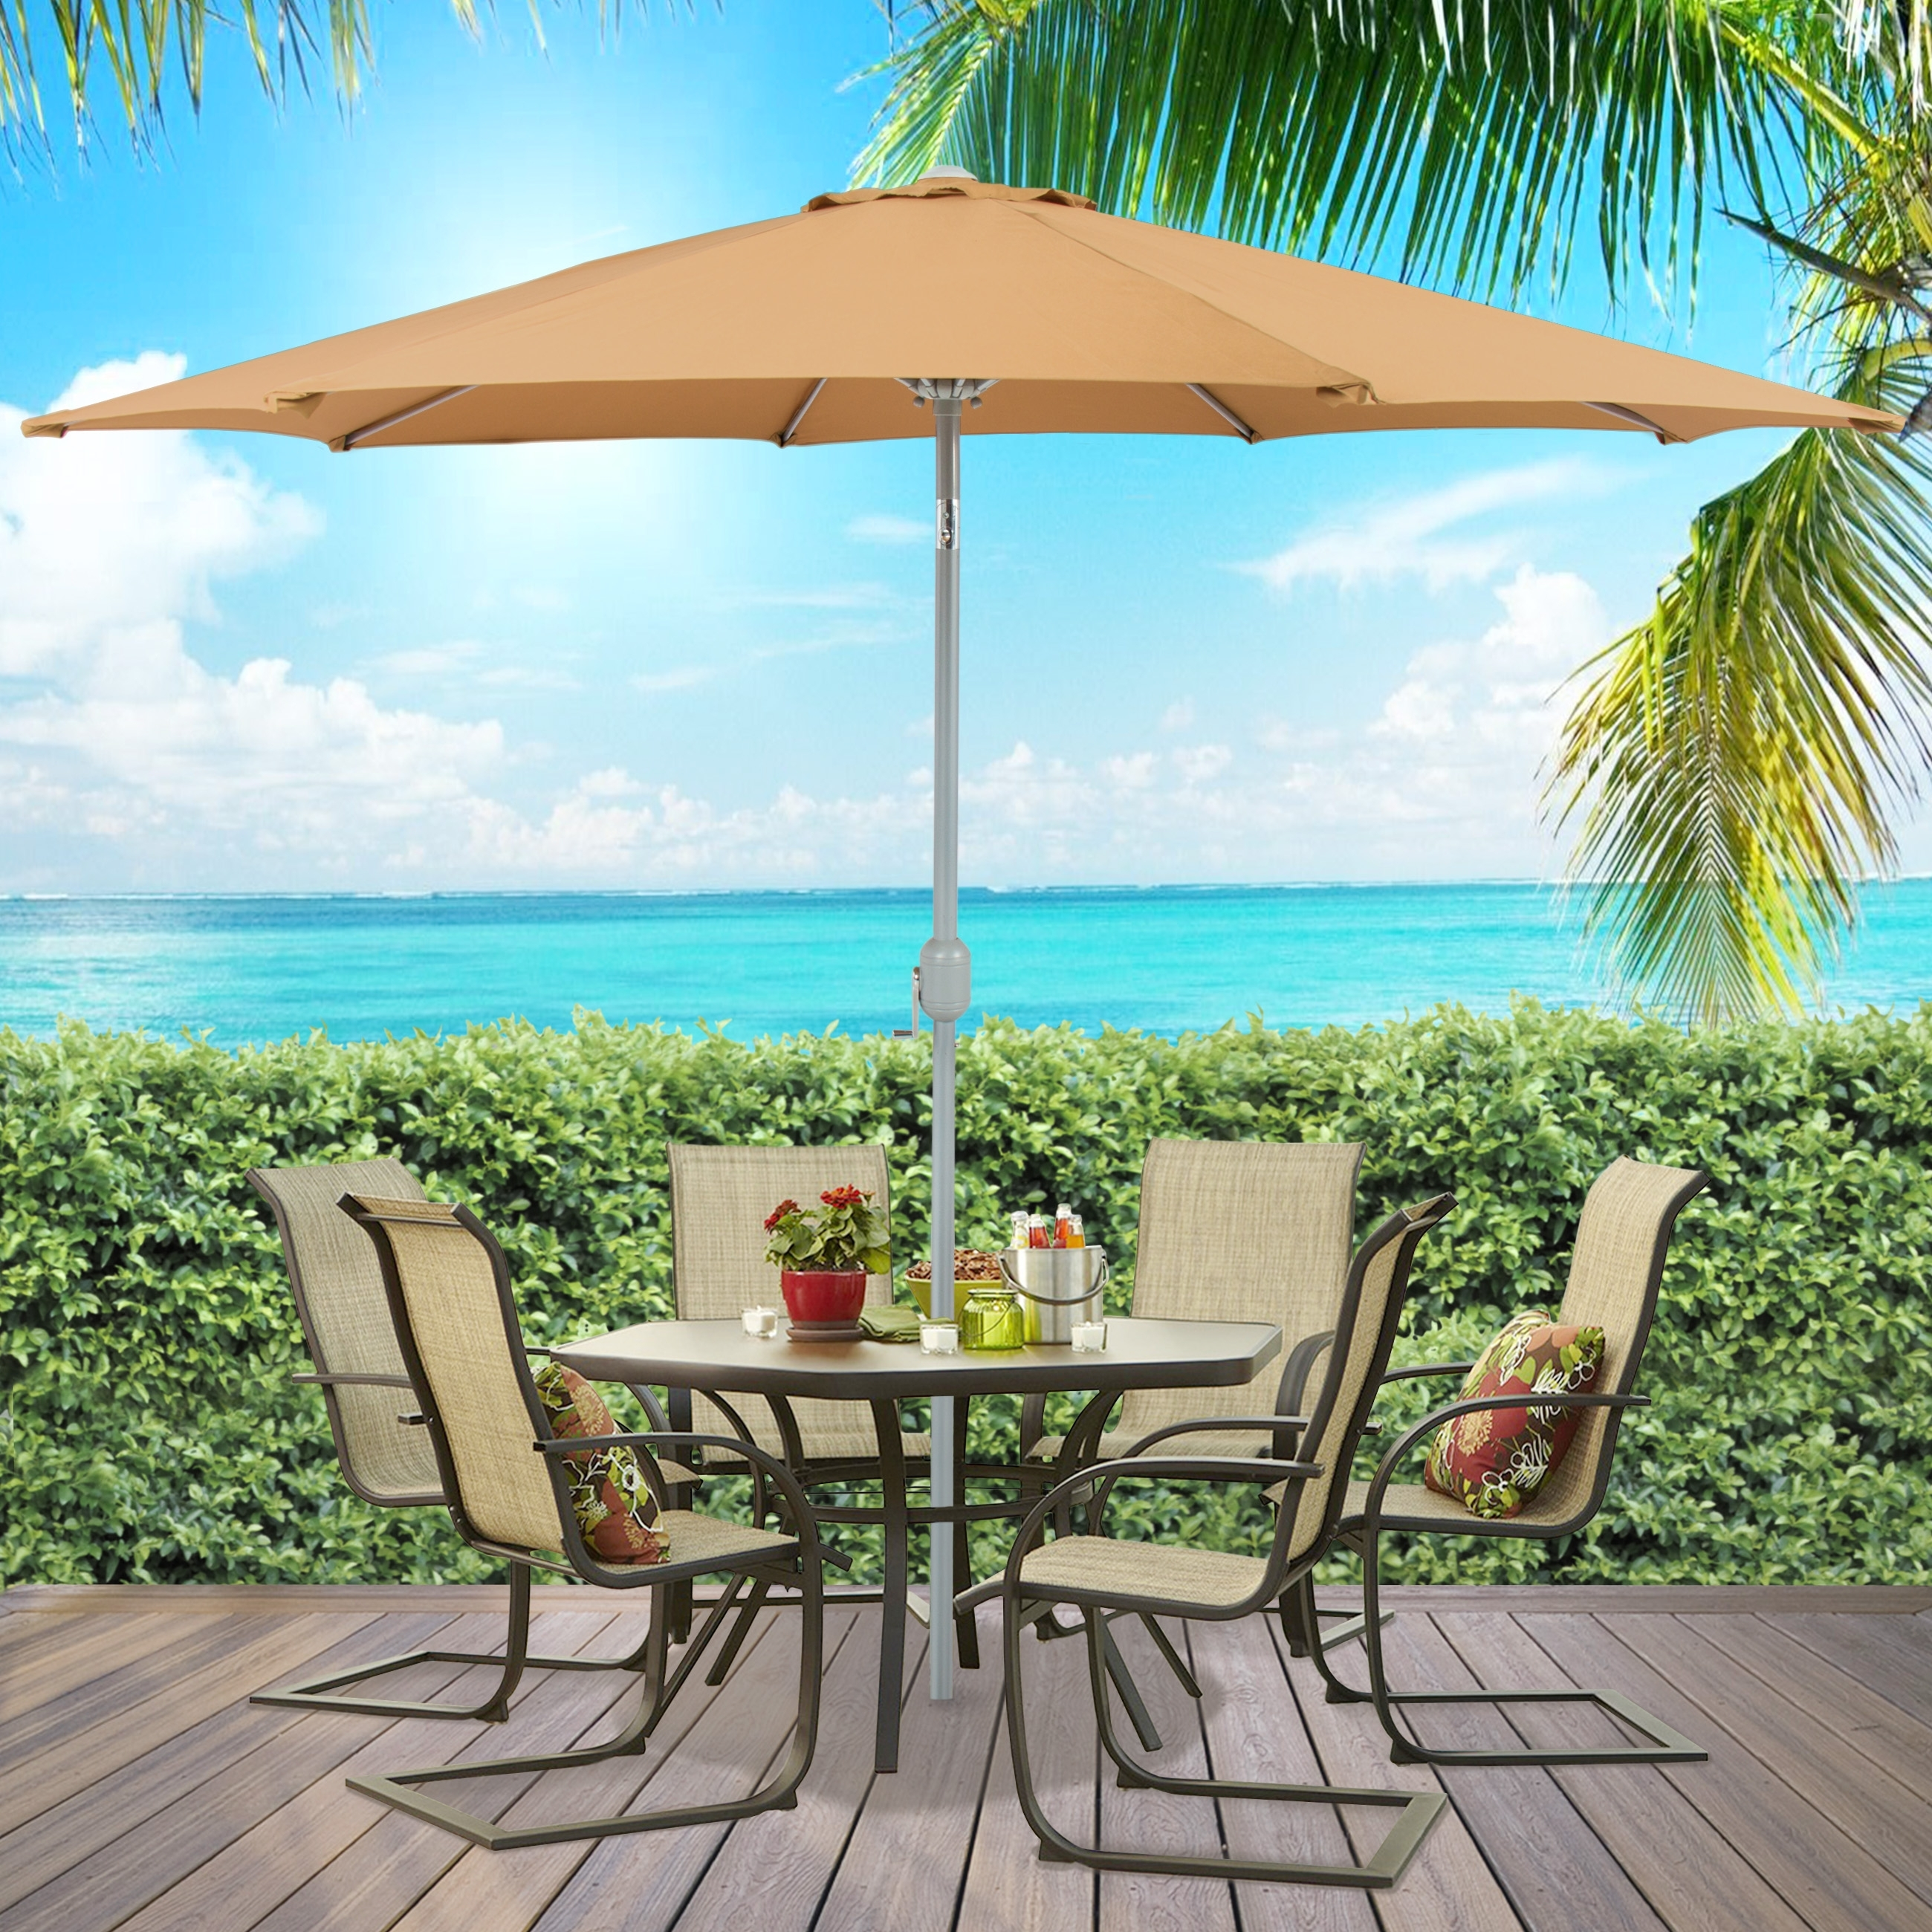 Best Choice Products Outdoor Furniture Wicker Rattan Patio Umbrella Pertaining To Most Up To Date Patio Umbrellas For Tables (View 2 of 20)